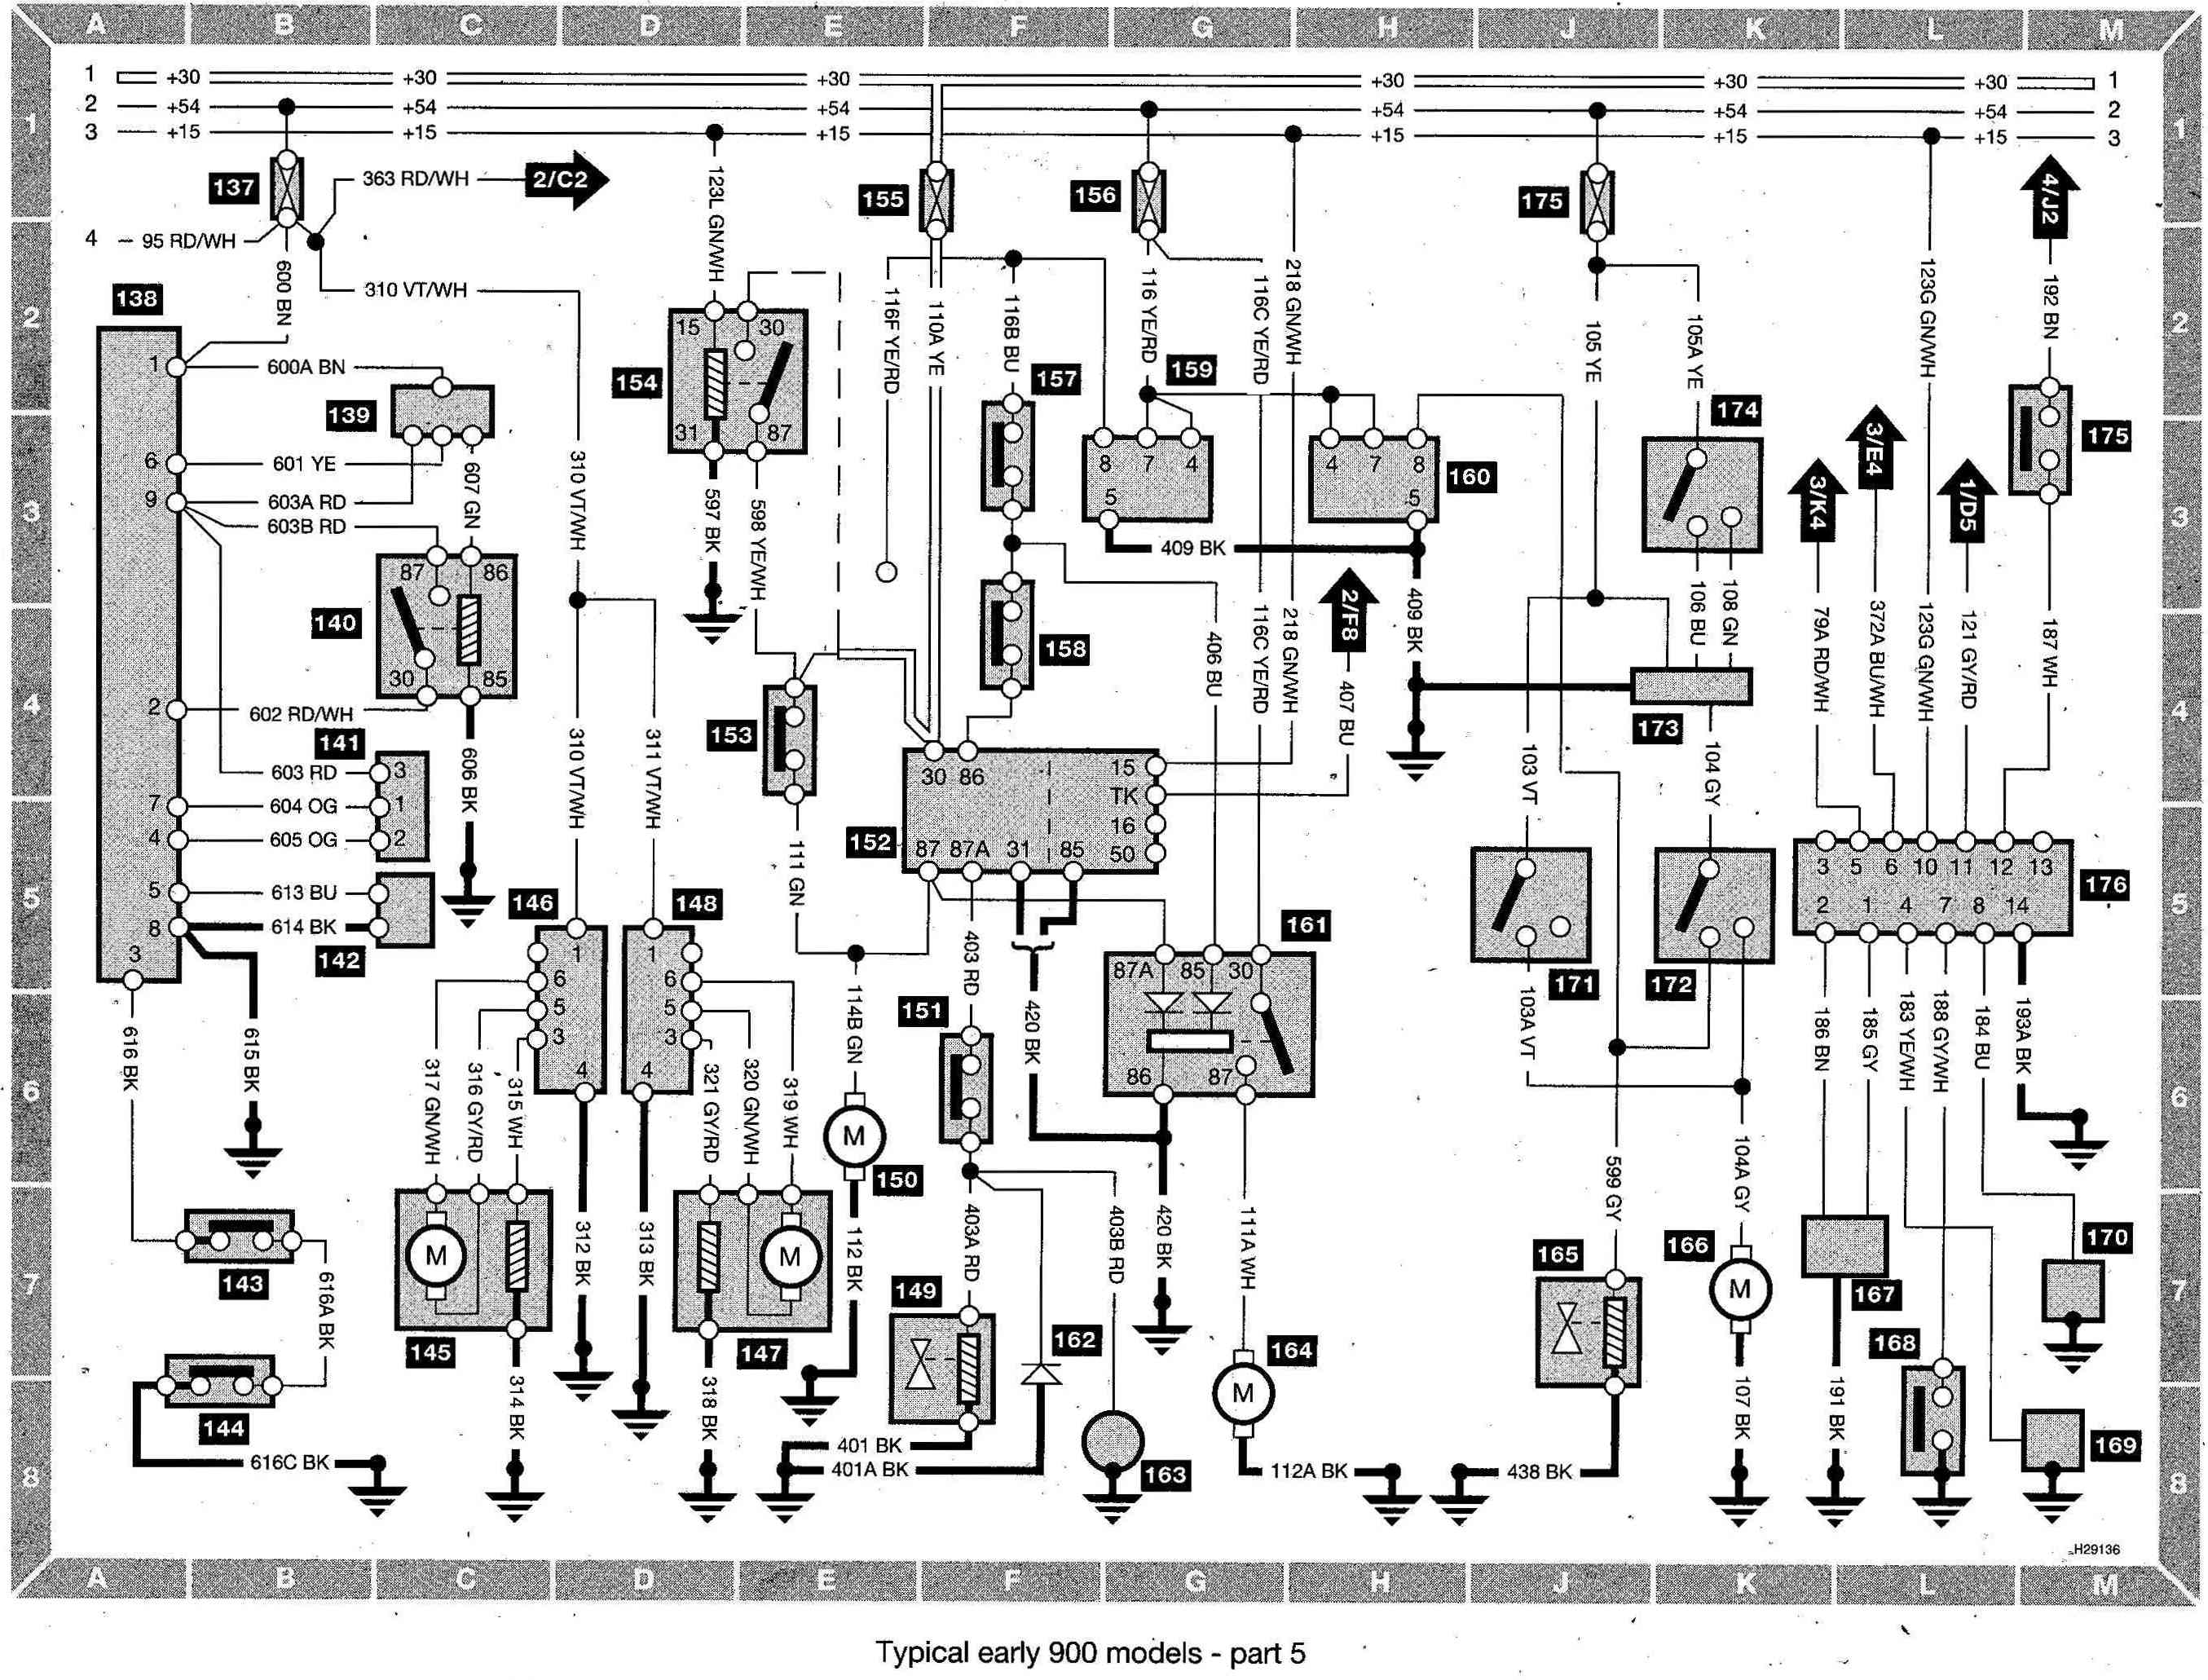 index of saab saab 900 wiring diagram early models rh j ware no ip com 1999 Saab 9 3 Amplifier Wiring saab radio wire diagram